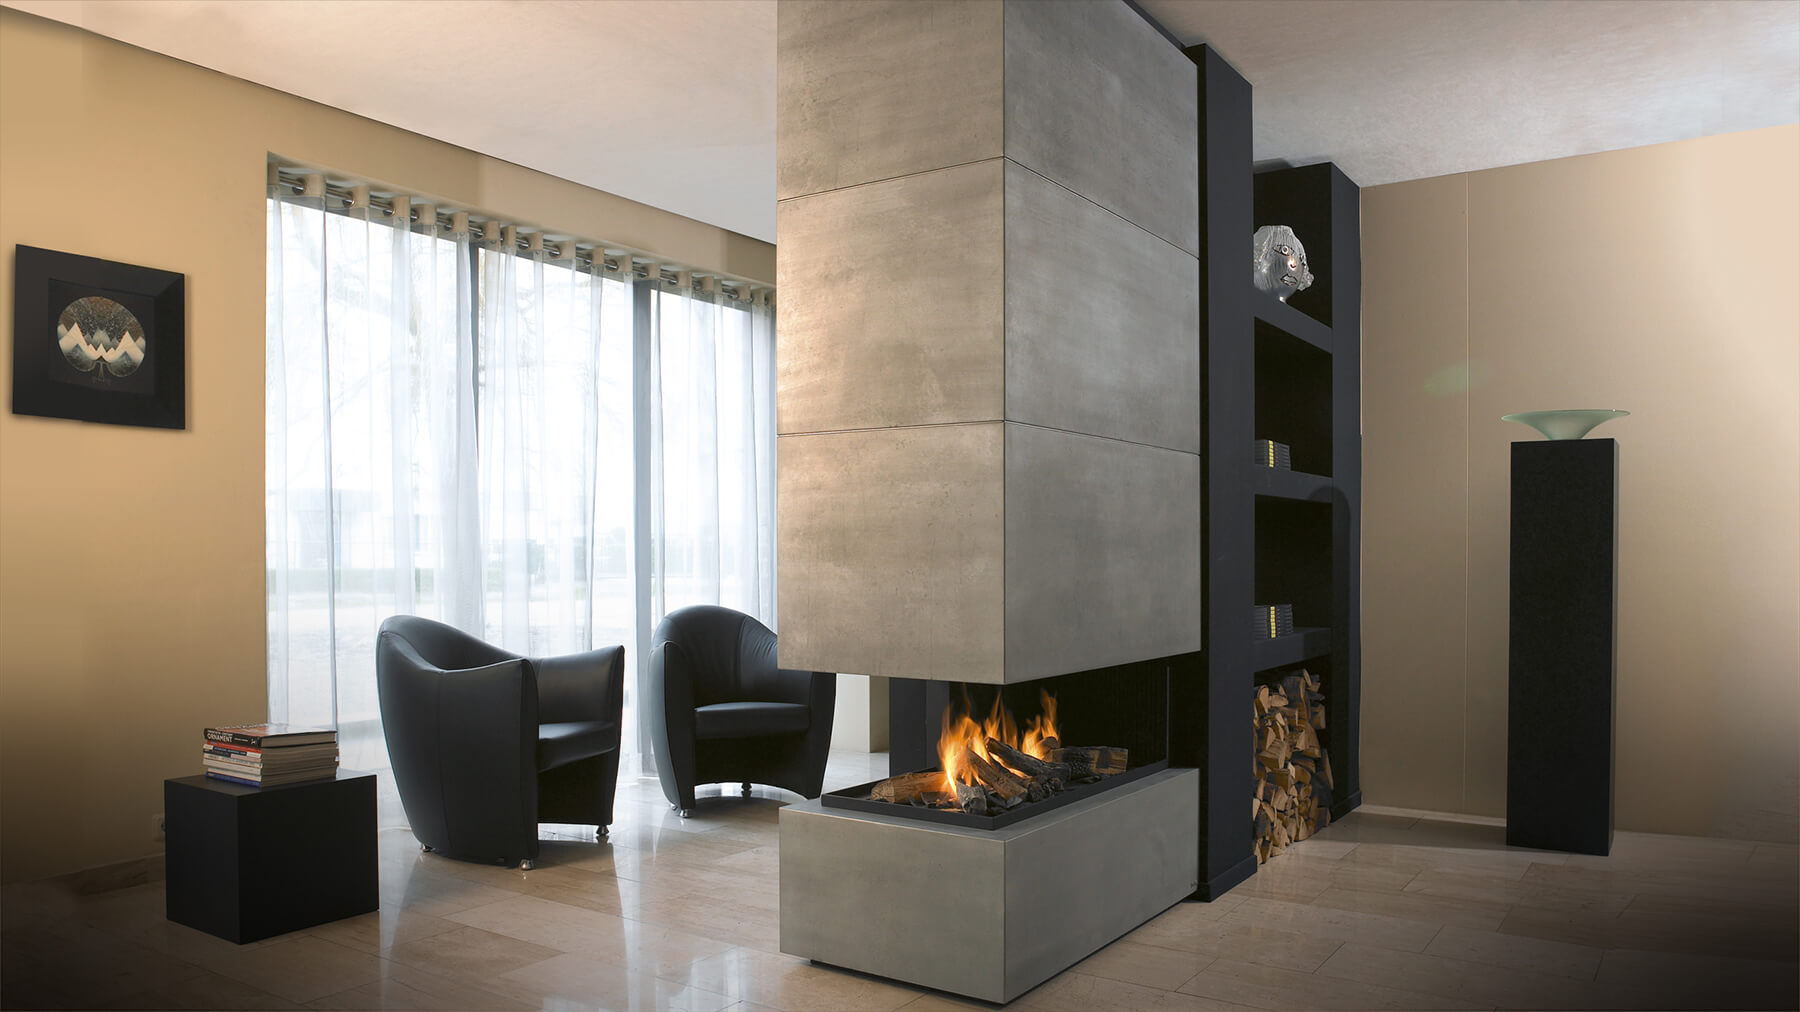 Suspended Fireplace I Hanging Fireplace